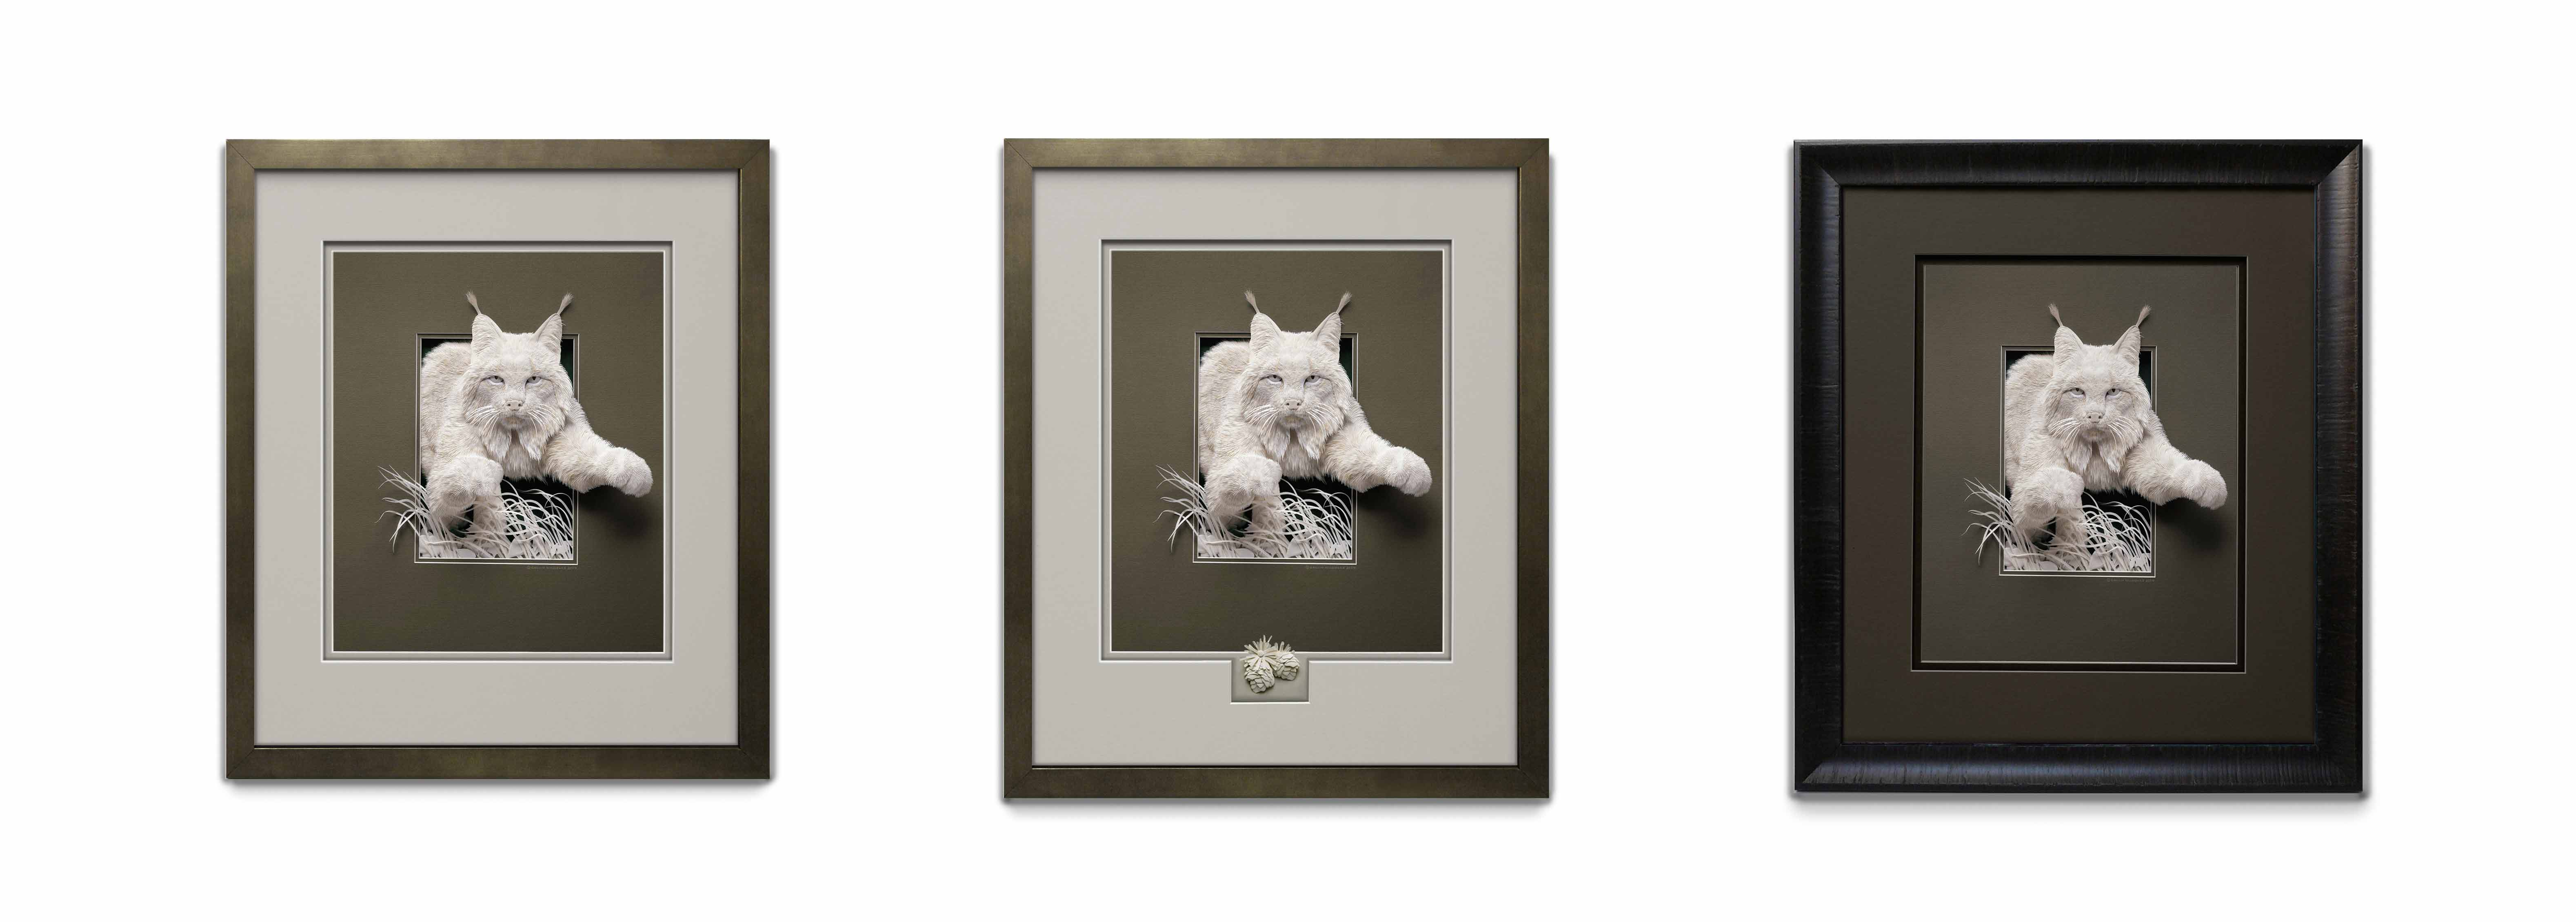 Calvin-Nicholls-framed-prints-on-white